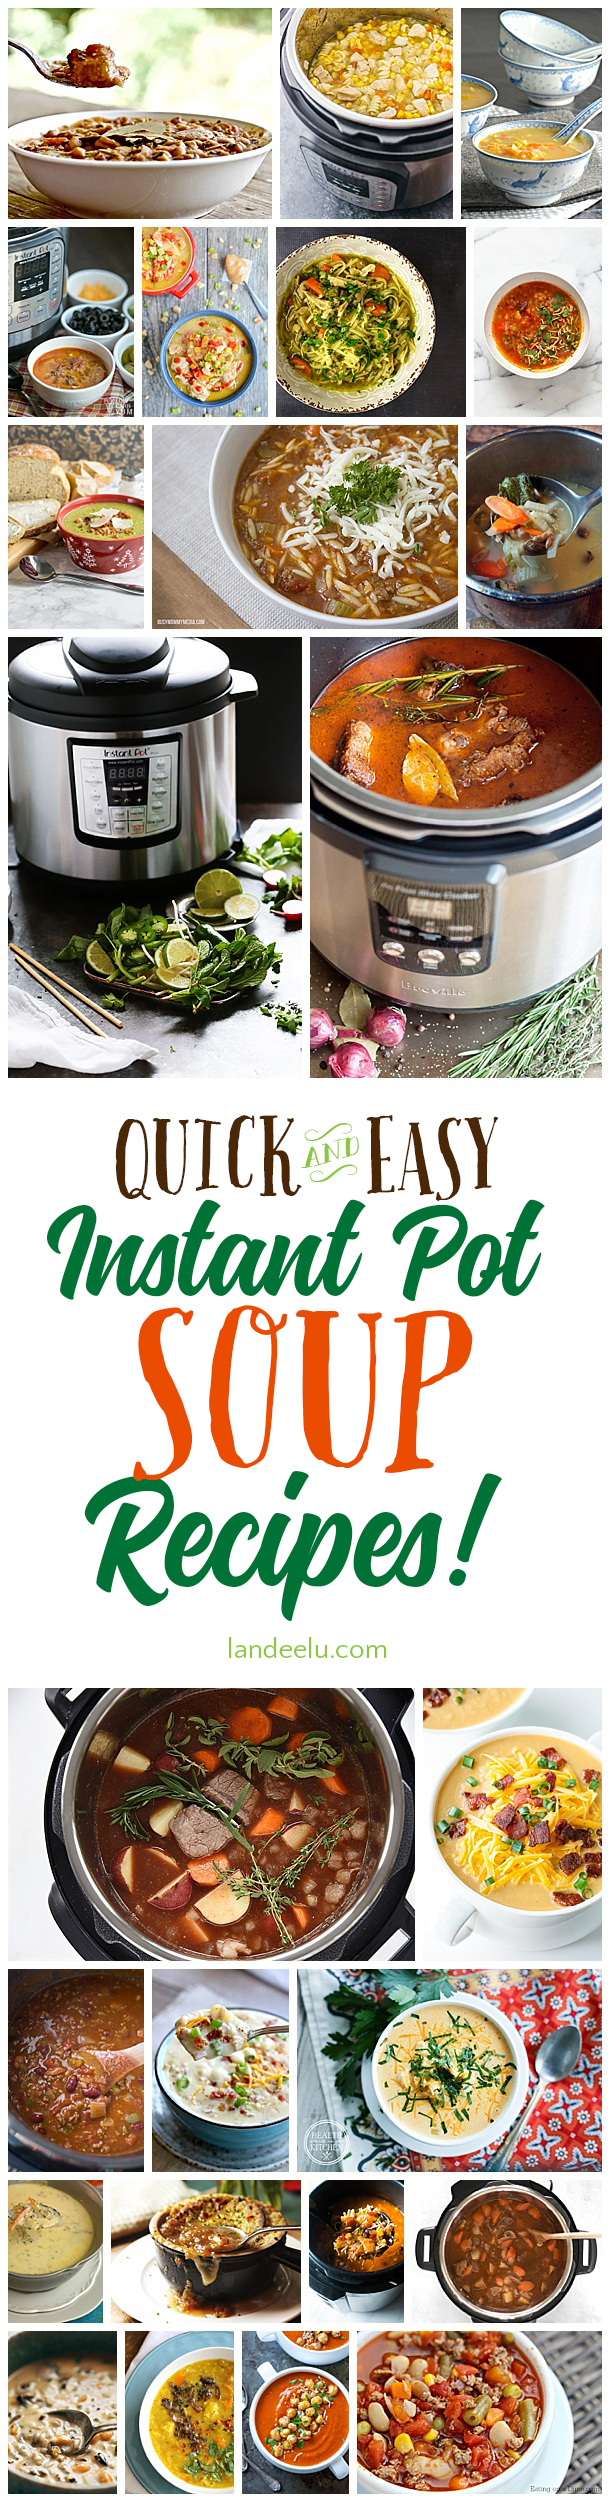 Make dinner quick, easy and delicious with these instant pot soup recipes! Yummm! #instantpot #instantpotrecipes #souprecipes #dinnerideas #pressurecooker #instantpotdinners